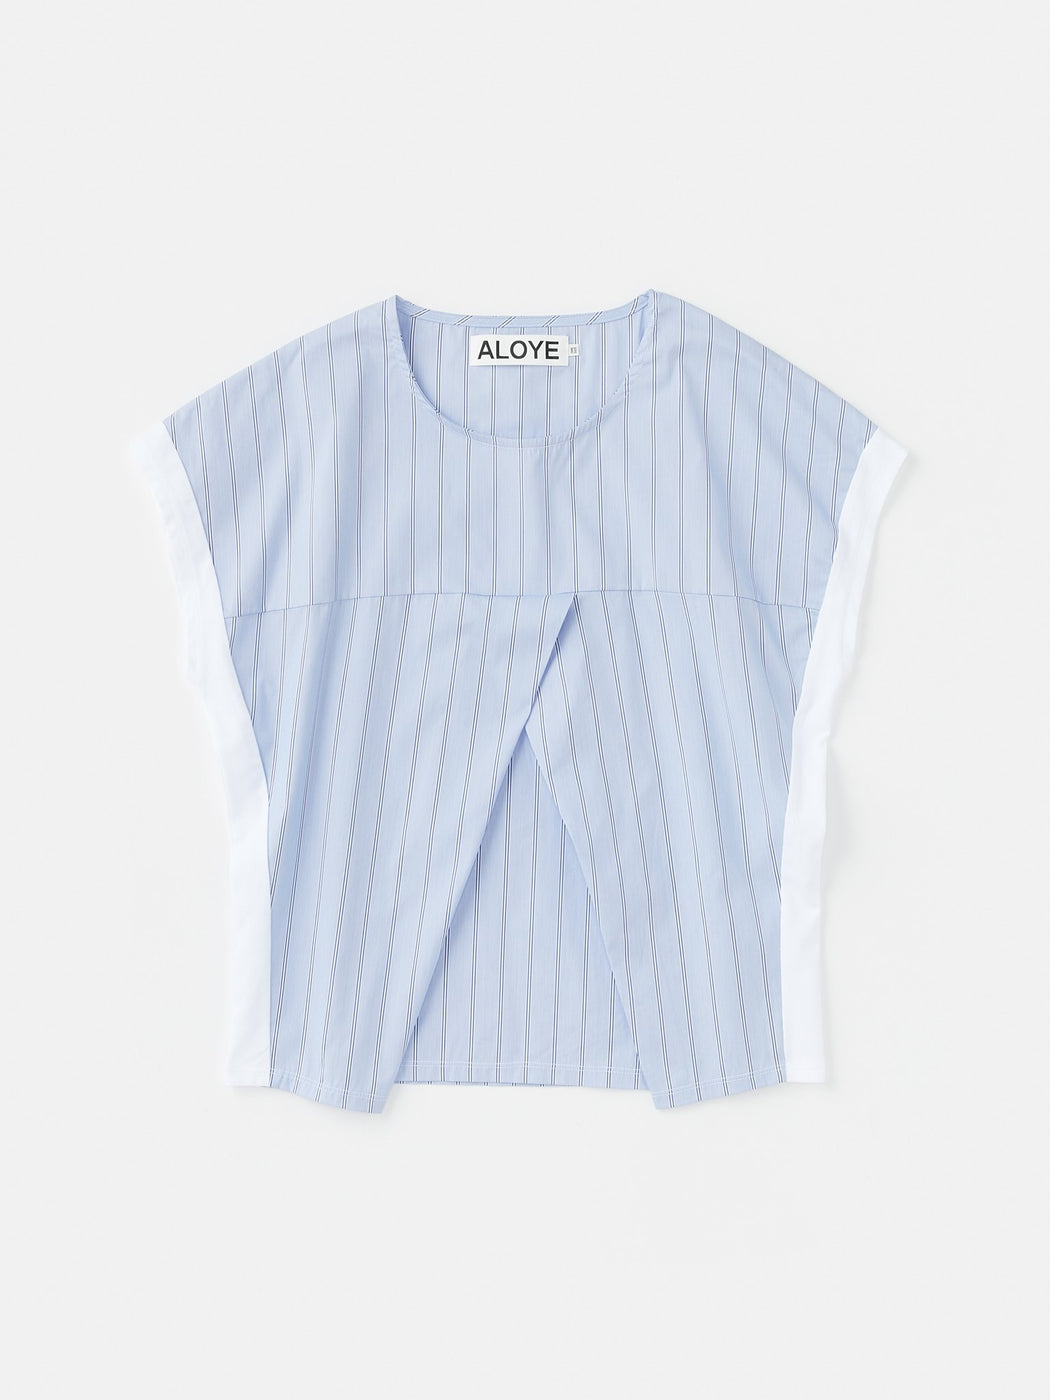 ALOYE Shirt Fabrics Women's Capped Sleeve T-shirt Blue Stripe-White